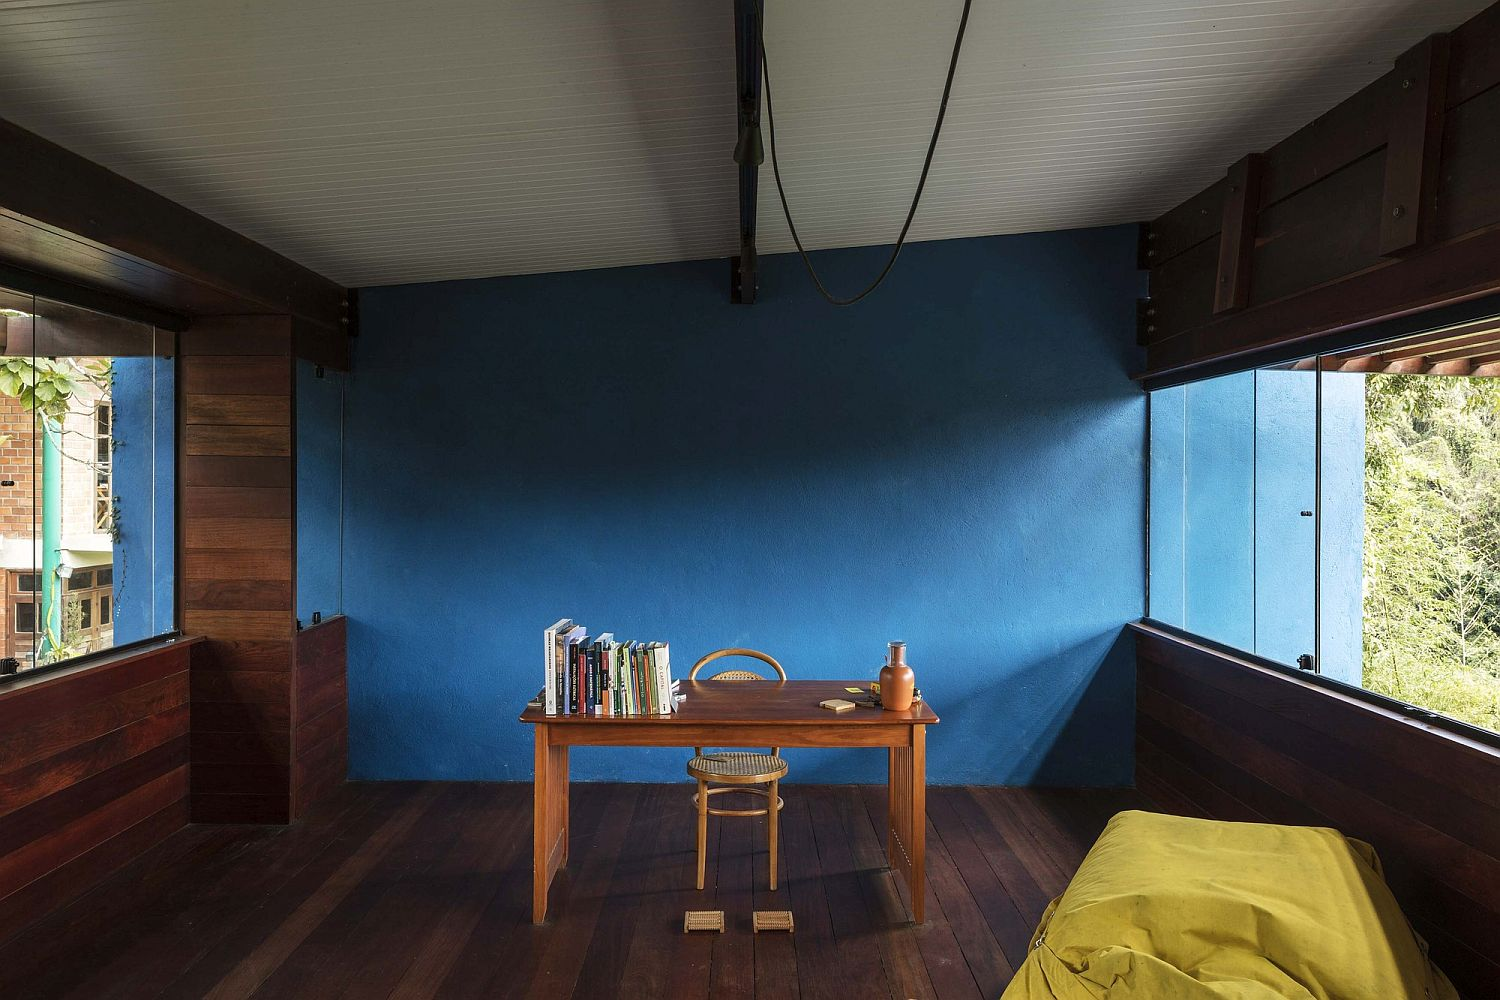 Blue-brings-color-and-brightness-to-the-interior